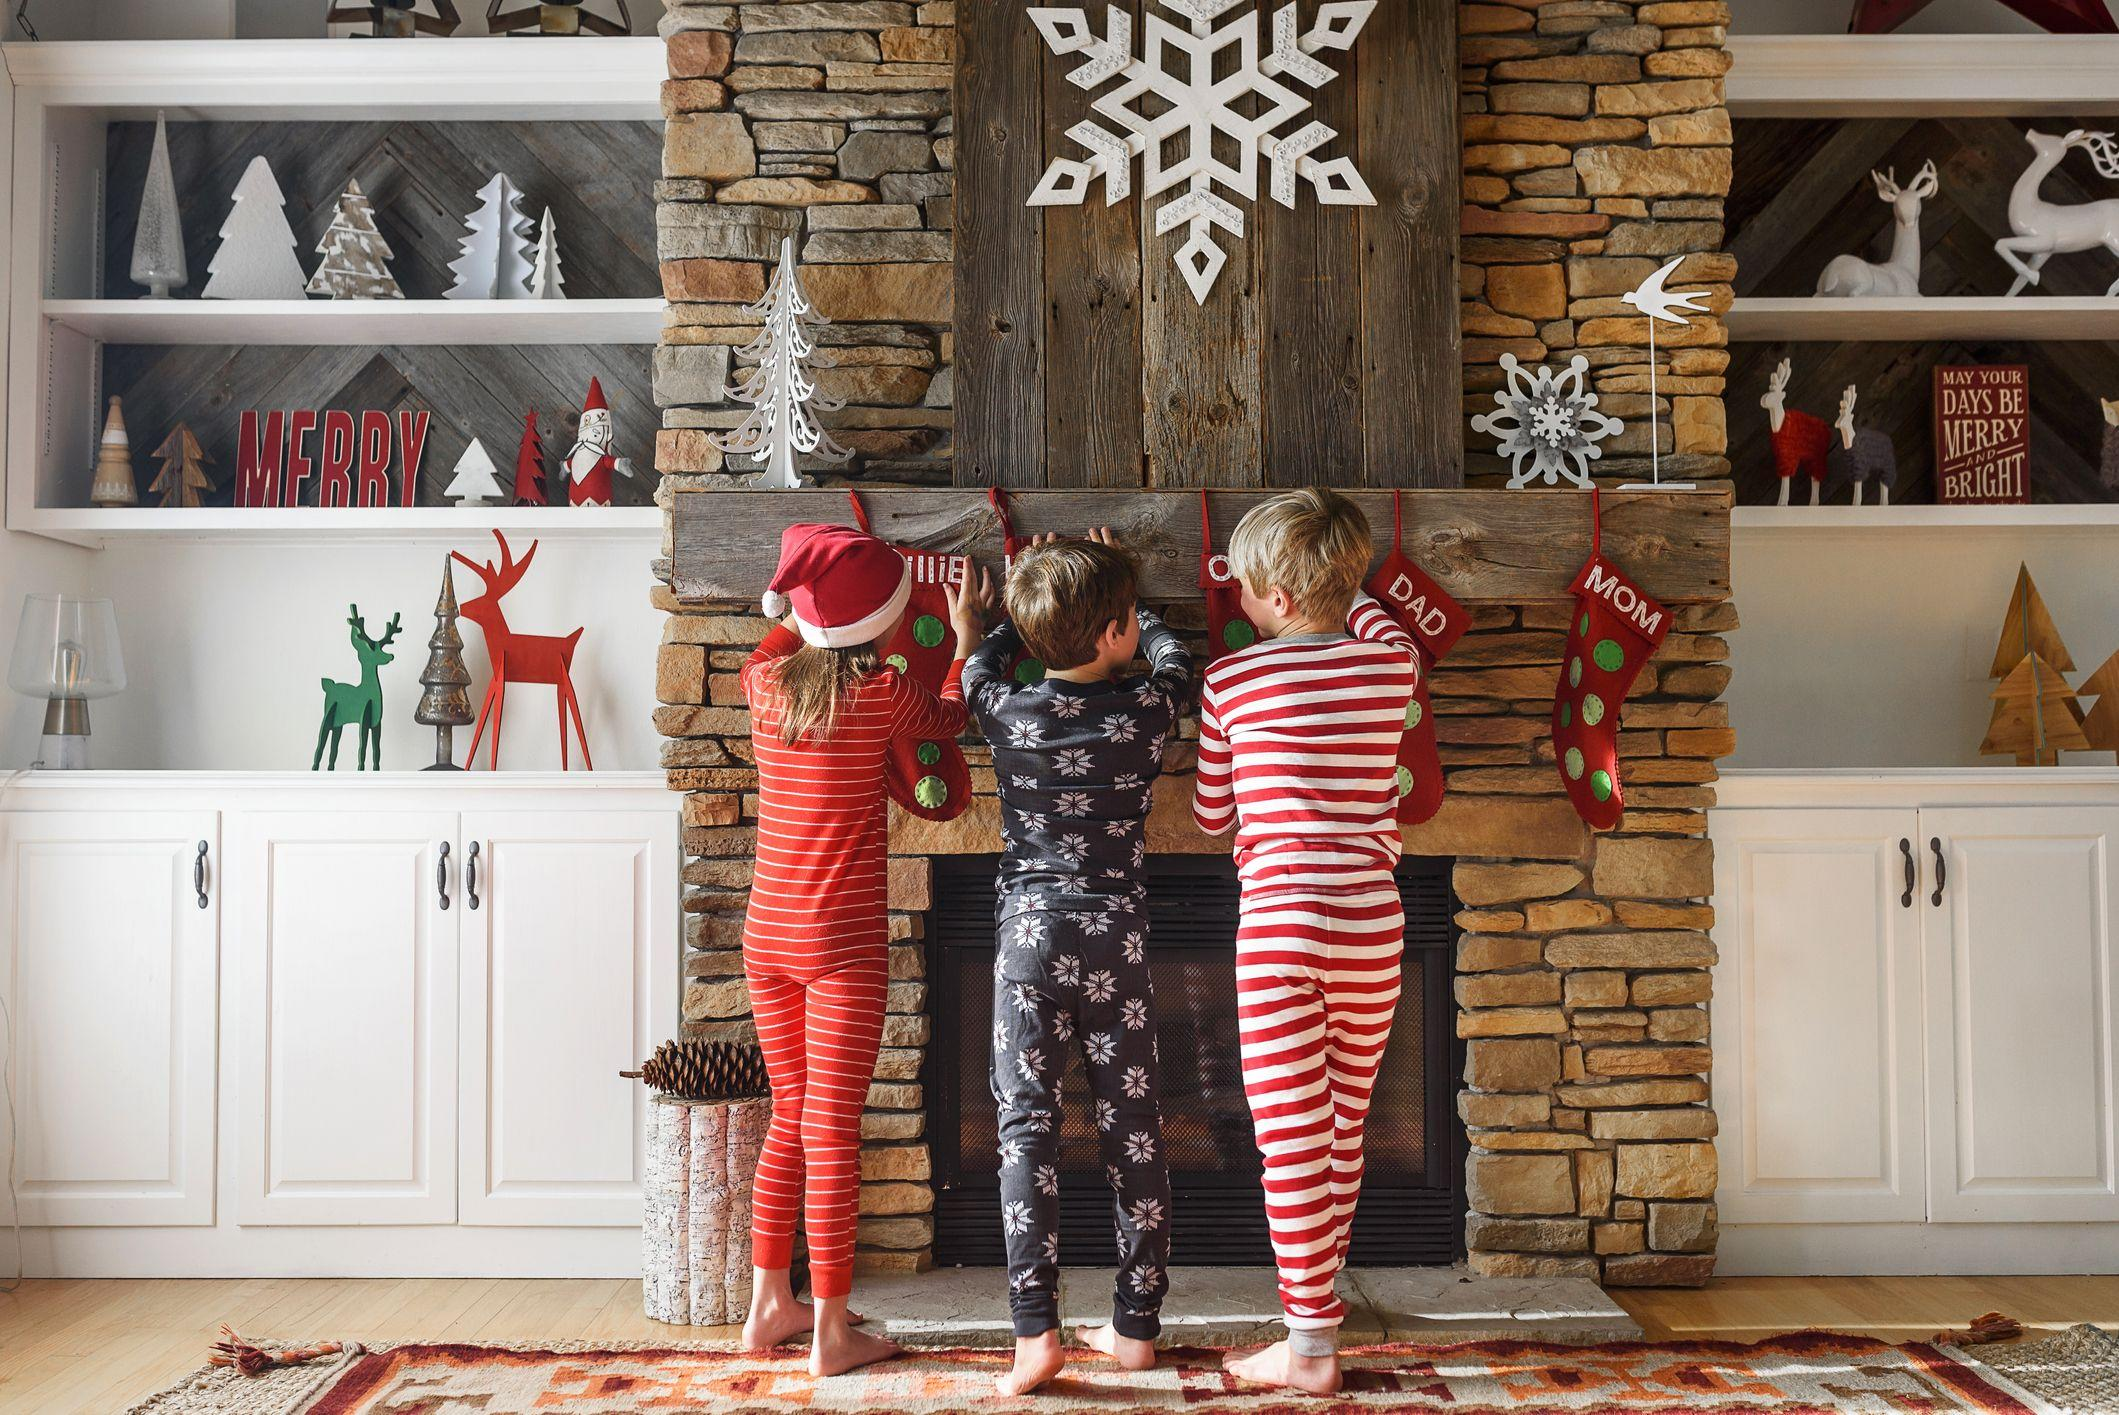 "<p>It's the most wonderful time of the year, so to help you get in the spirit, we've created a list of the best Christmas quotes ever (which conveniently double as great <a href=""https://www.countryliving.com/life/entertainment/g5014/merry-christmas-wishes/"" rel=""nofollow noopener"" target=""_blank"" data-ylk=""slk:Christmas wishes"" class=""link rapid-noclick-resp"">Christmas wishes</a> to send to friends). They'll fill your heart with joy and remind you of the reason for the season. Many of these quotes are from famous figures or <a href=""https://www.countryliving.com/life/entertainment/g5034/top-christmas-movies/"" rel=""nofollow noopener"" target=""_blank"" data-ylk=""slk:Christmas movies"" class=""link rapid-noclick-resp"">Christmas movies</a> you know and love, so you'll definitely recognize some of the words. As you're wrapping gifts for friends and family members, try out one one of these quotes to write on the tag, it's a little something extra that will make them feel loved.</p><p>Whether you're looking for a fun way to sign your annual <a href=""https://www.countryliving.com/diy-crafts/how-to/g3872/christmas-card-ideas/"" rel=""nofollow noopener"" target=""_blank"" data-ylk=""slk:Christmas cards"" class=""link rapid-noclick-resp"">Christmas cards</a>, or just need an extra dose of Christmas cheer, these quotes will have you in the Holiday spirit in no time! So, next time you're watching Christmas movies with the kids, or baking some <a href=""https://www.countryliving.com/food-drinks/g647/holiday-cookies-1208/"" rel=""nofollow noopener"" target=""_blank"" data-ylk=""slk:holiday cookies"" class=""link rapid-noclick-resp"">holiday cookies</a>, share some of these sayings with your family. After all, ""The best way to spread Christmas cheer is singing loud for all to hear,"" will have everyone excited for December 25.</p>"